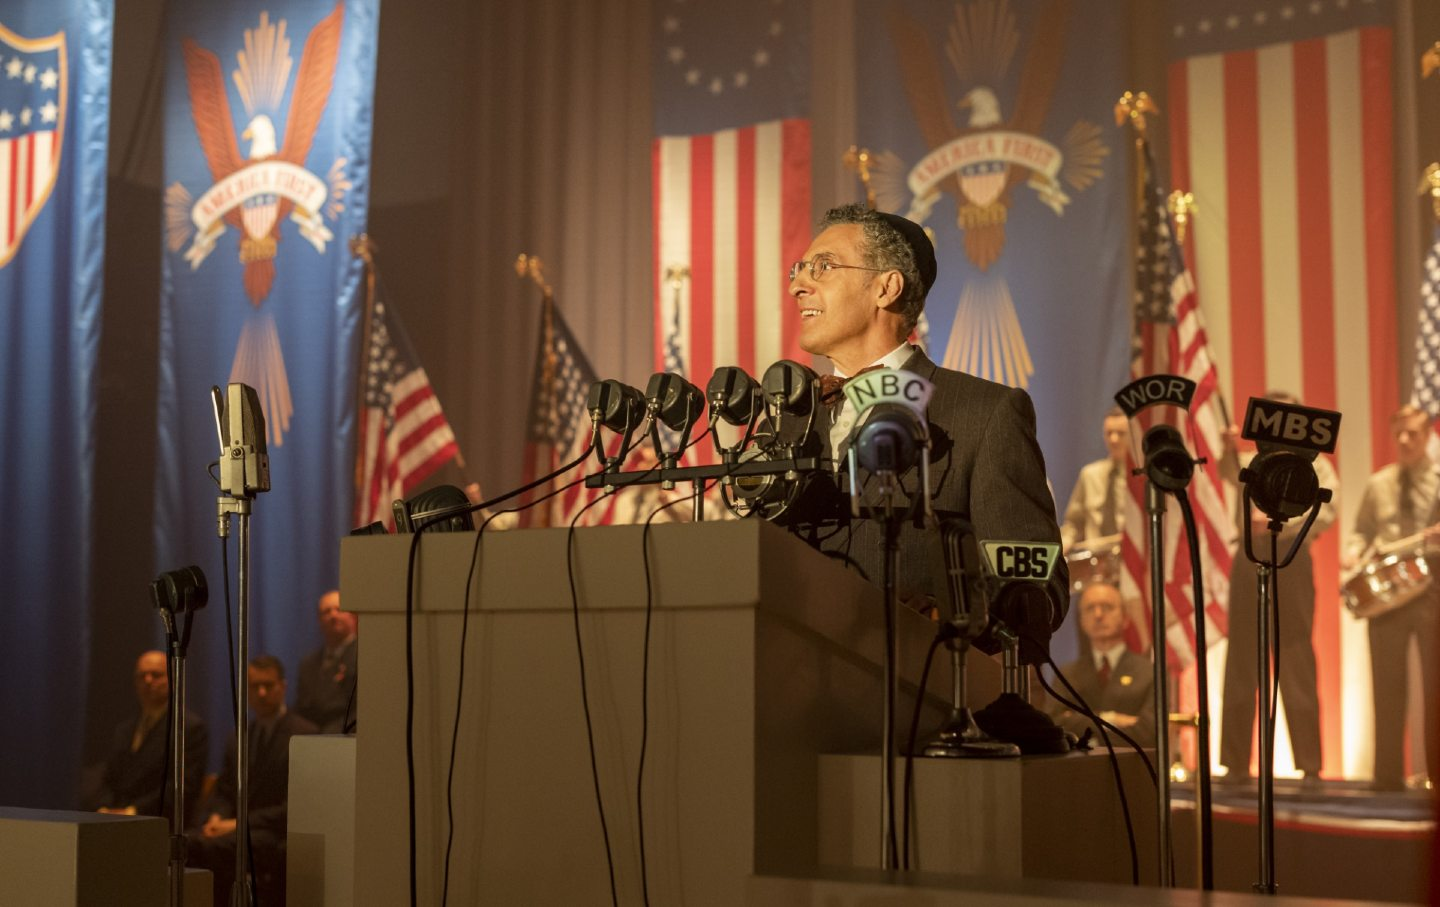 John Turturro stands at a podium with microphones, playing a rabbi in The Plot Against America